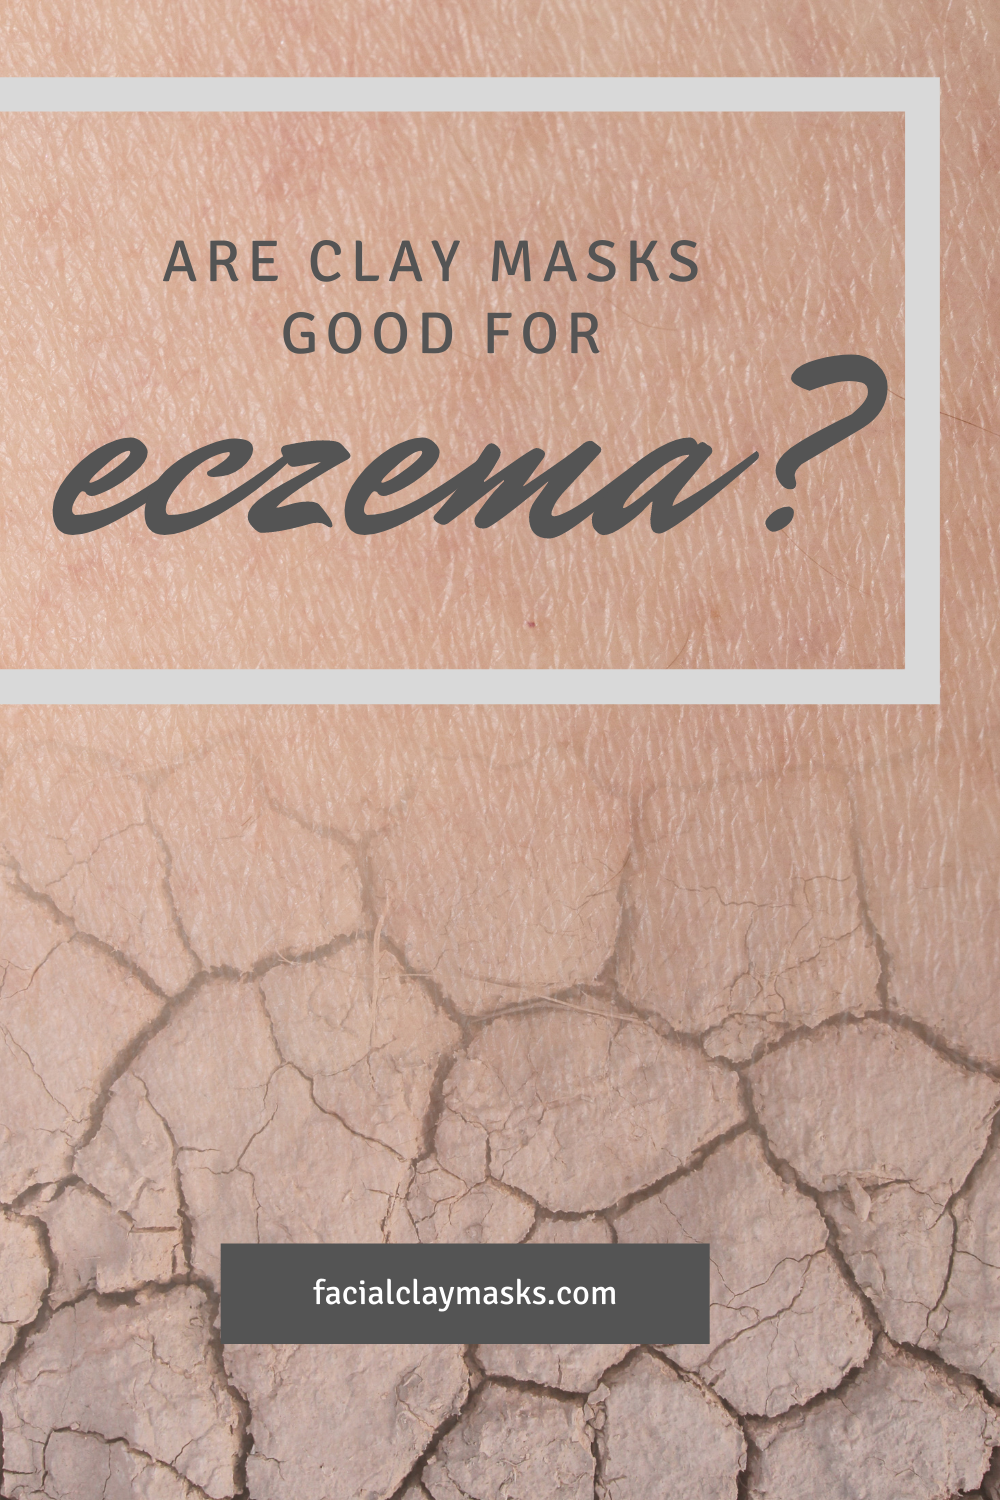 Are clay masks good for Eczema? 1